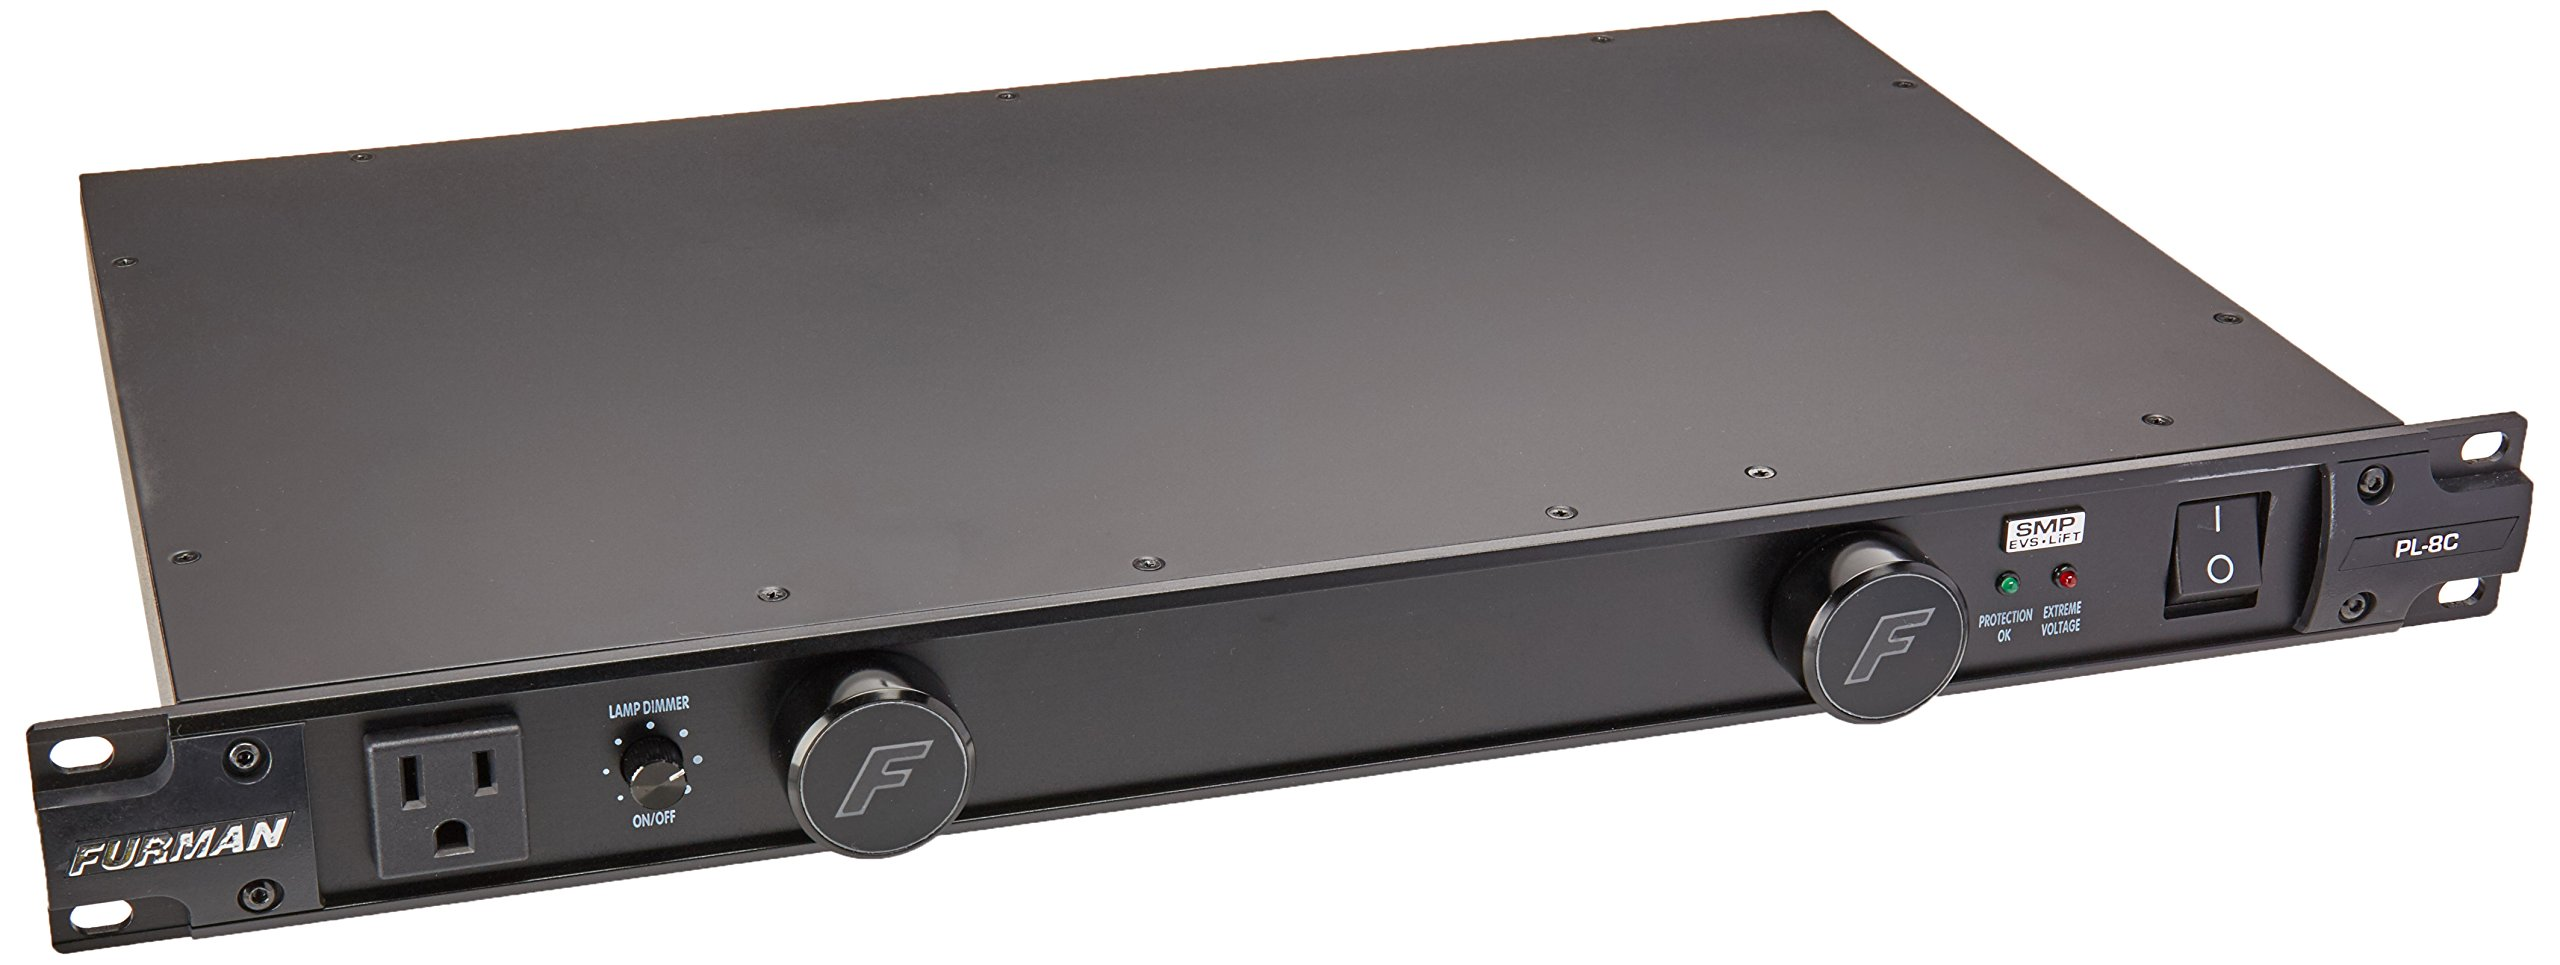 Furman PL-8C 15 Amp, Advanced Level Power Conditioning, SMP, EVS, LiFT,  9 Outlets, Pullout LED Lights, Isolated Outlet Banks